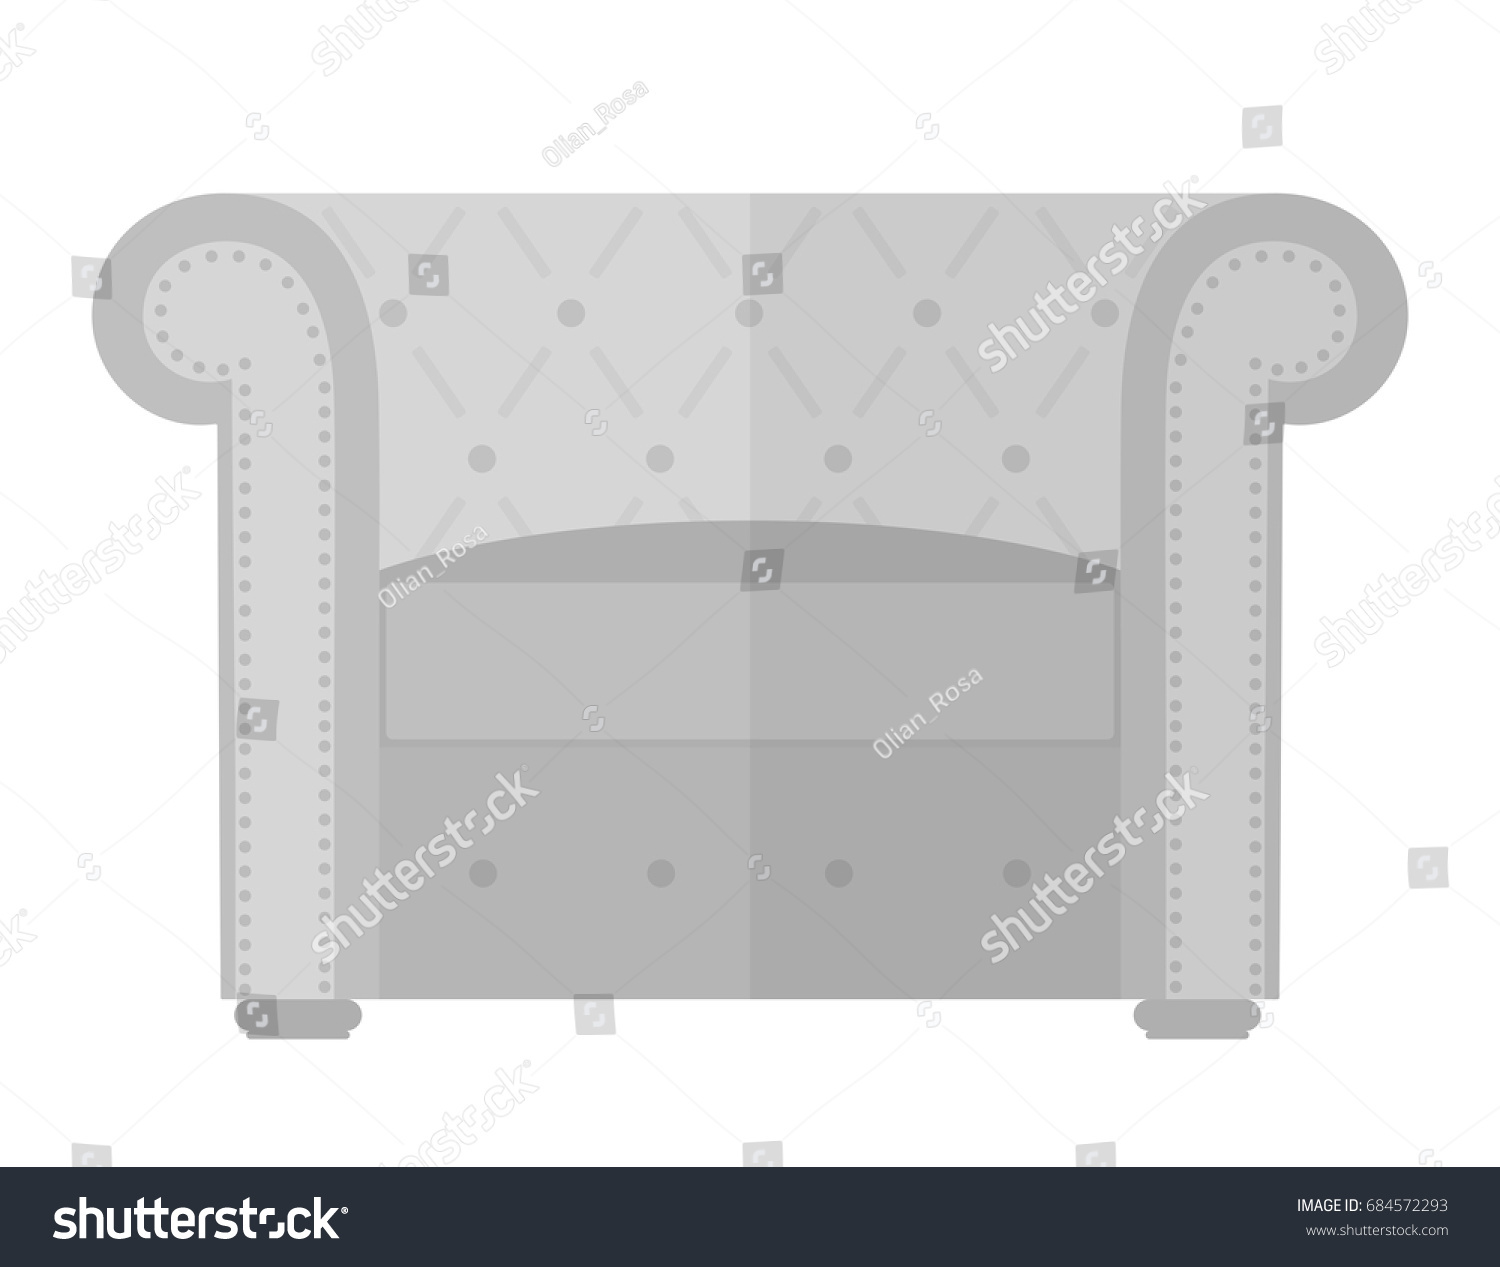 Vintage Armchair Chesterfield Interior Design Elements Furniture Isolated On White Background